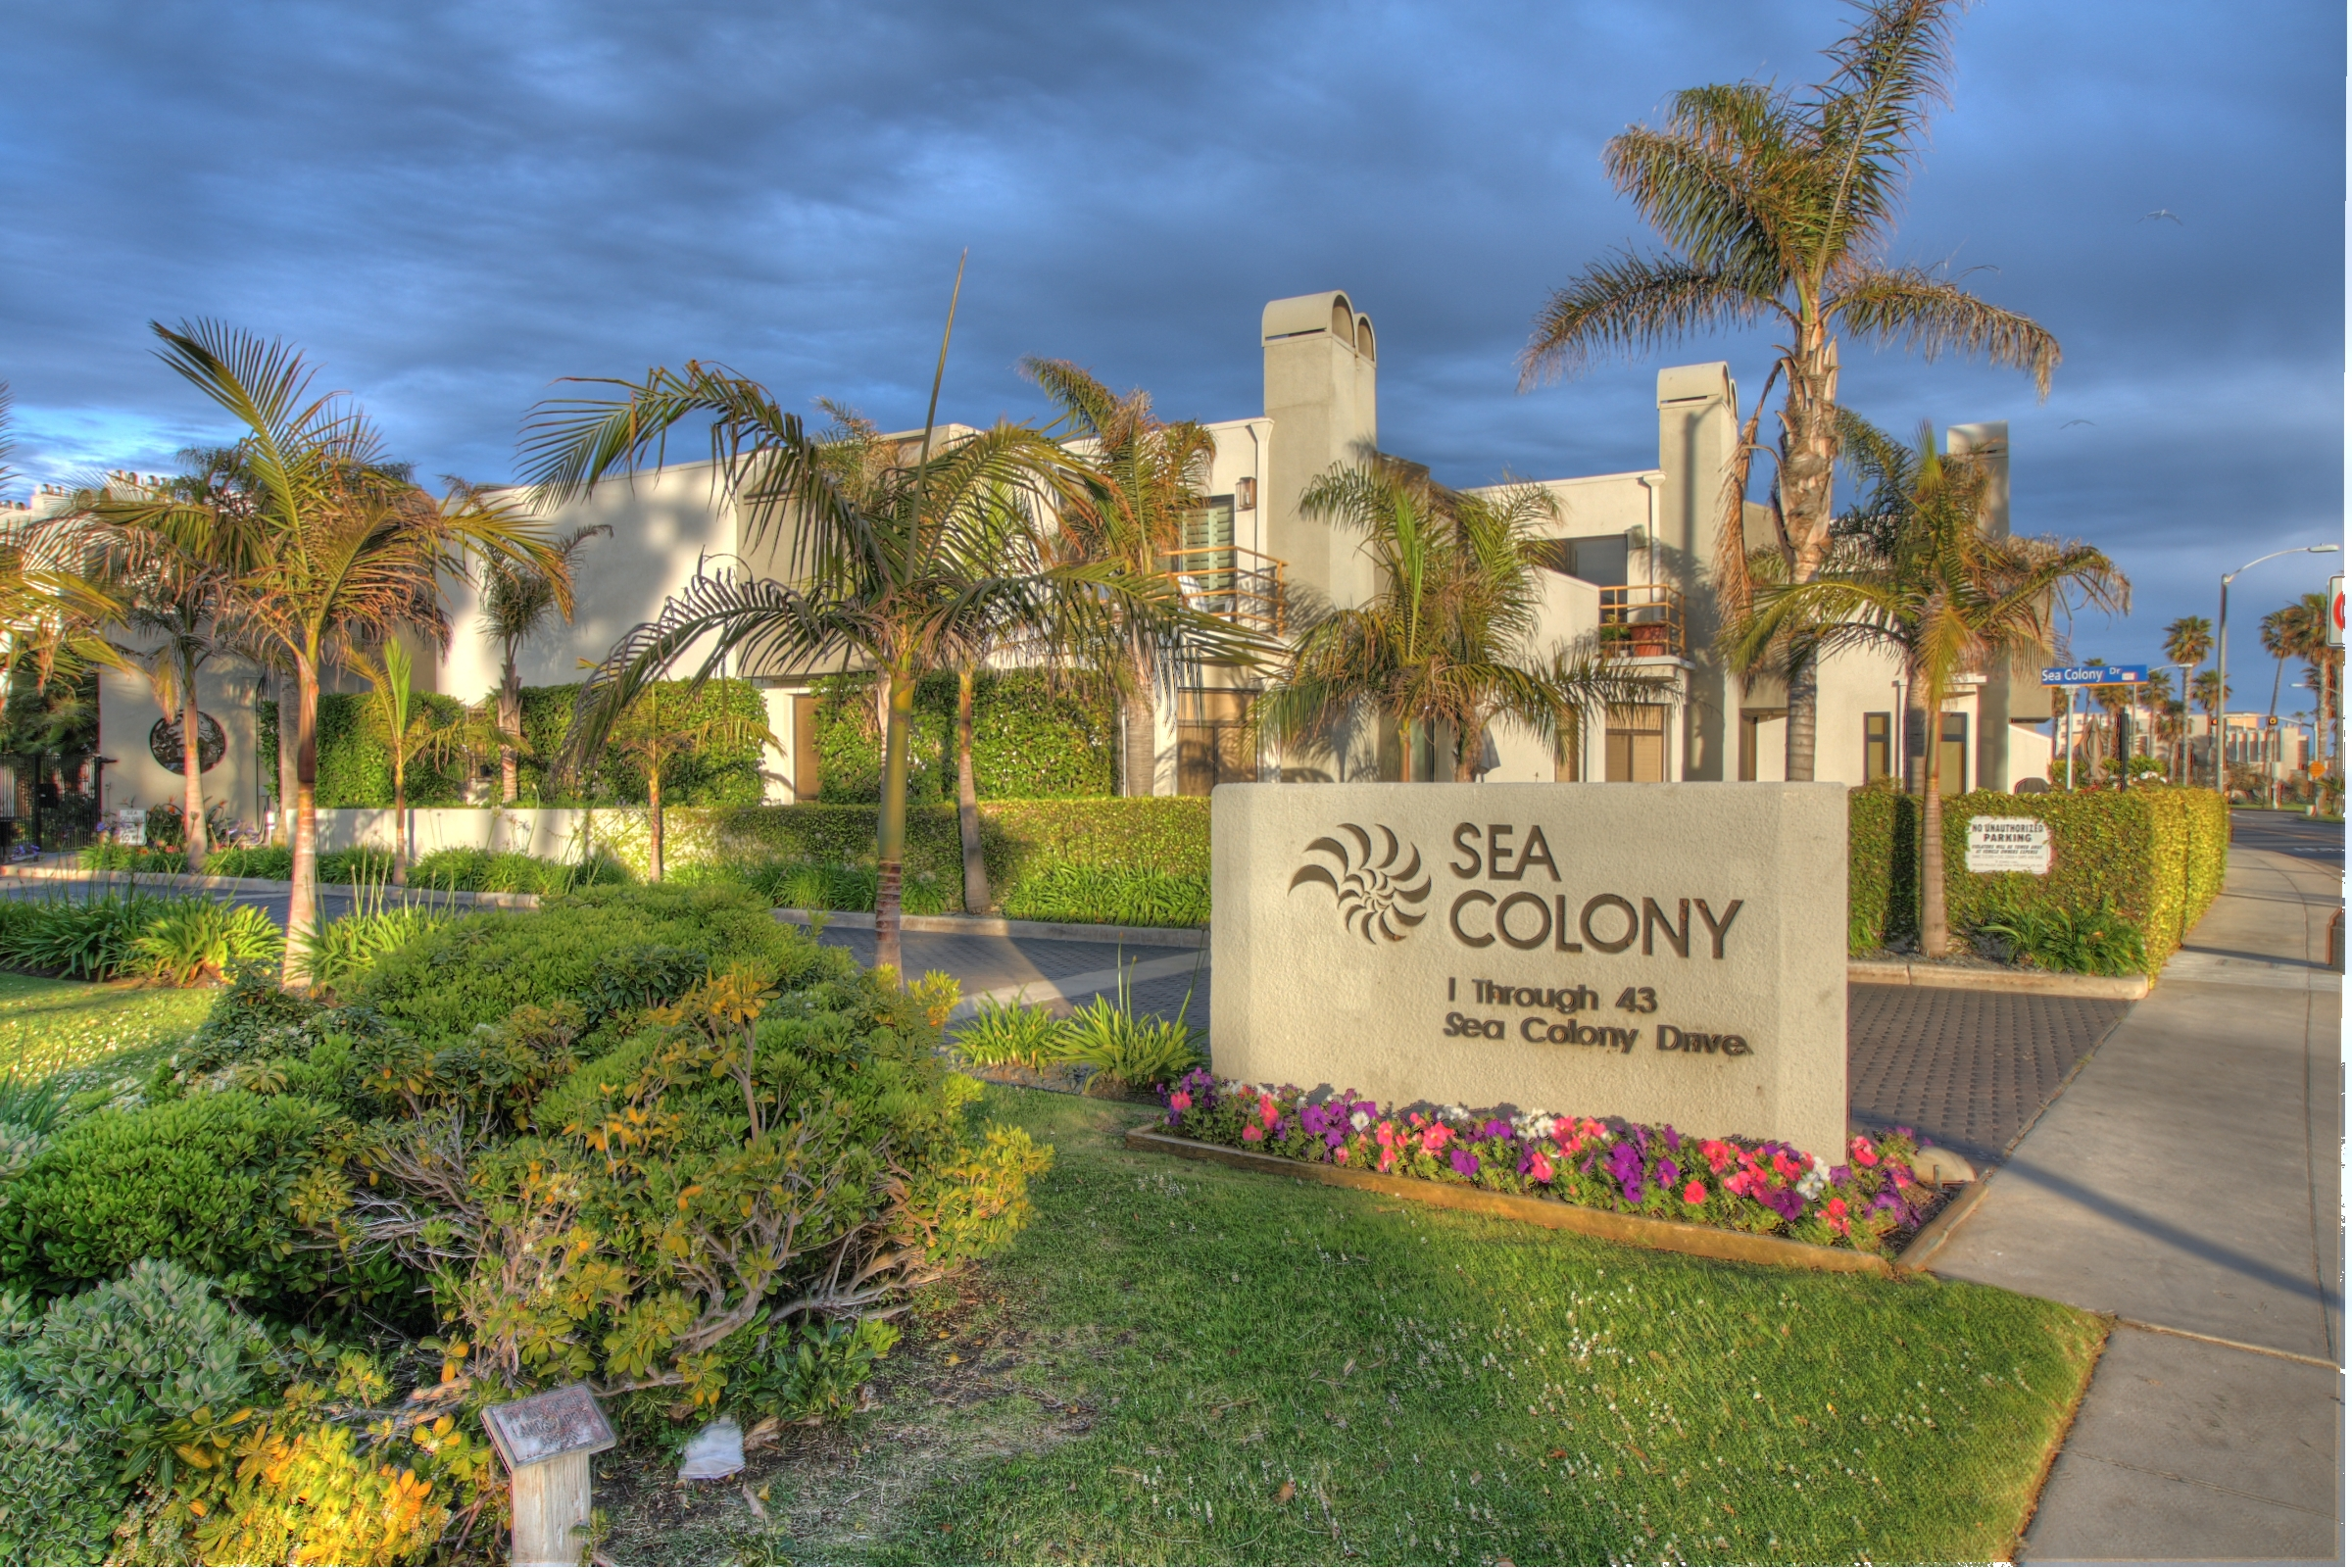 Top 10 most expensive properties in santa monica santa for House for sale in santa monica